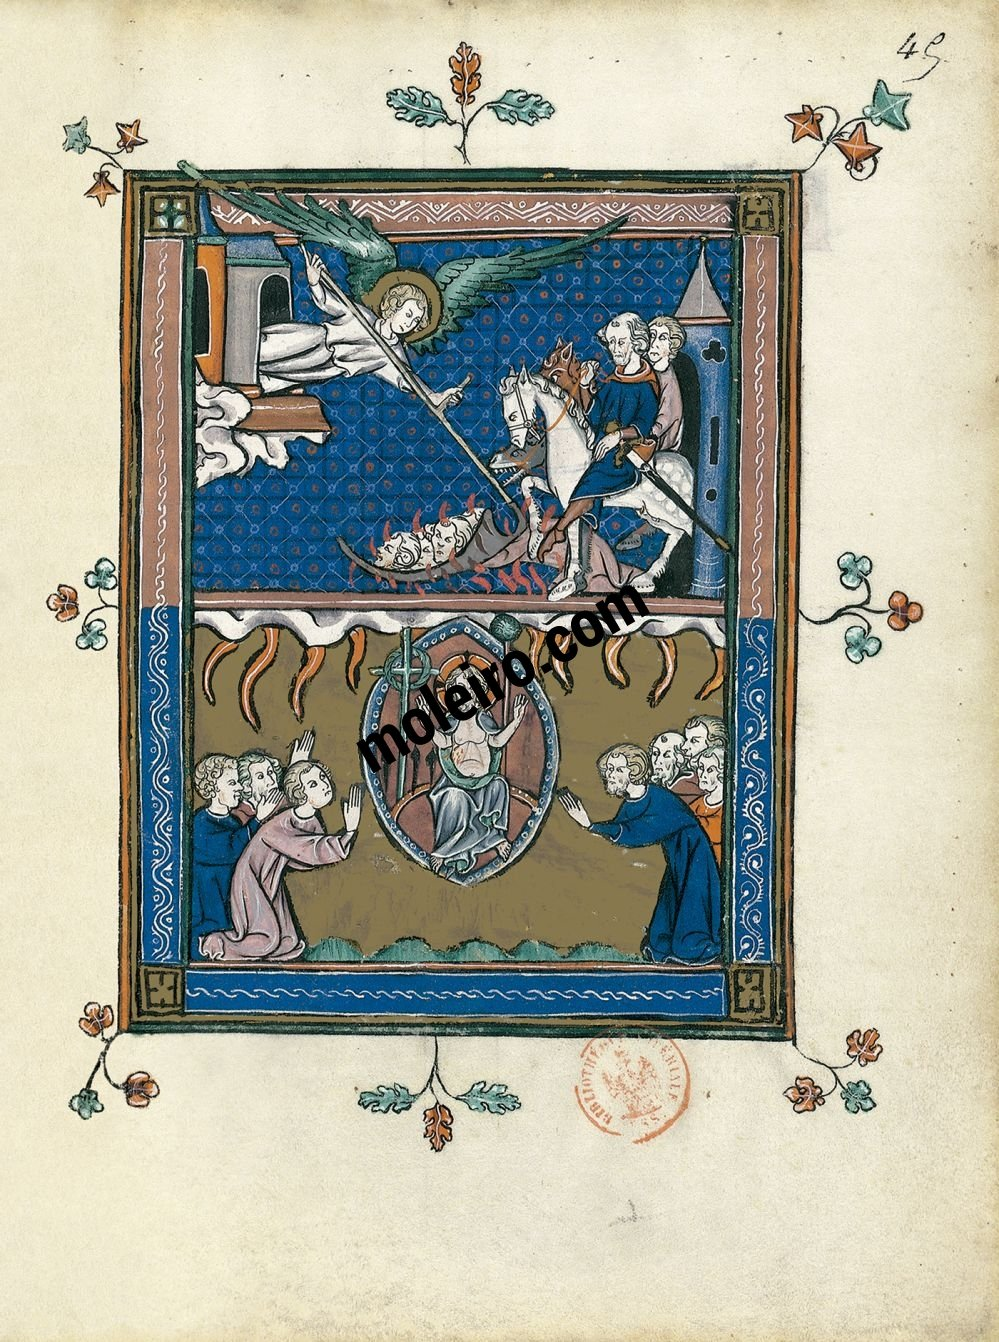 The Apocalypse of 1313 f. 45r, The Judgement of the nations (Revelation 14: 17-20)